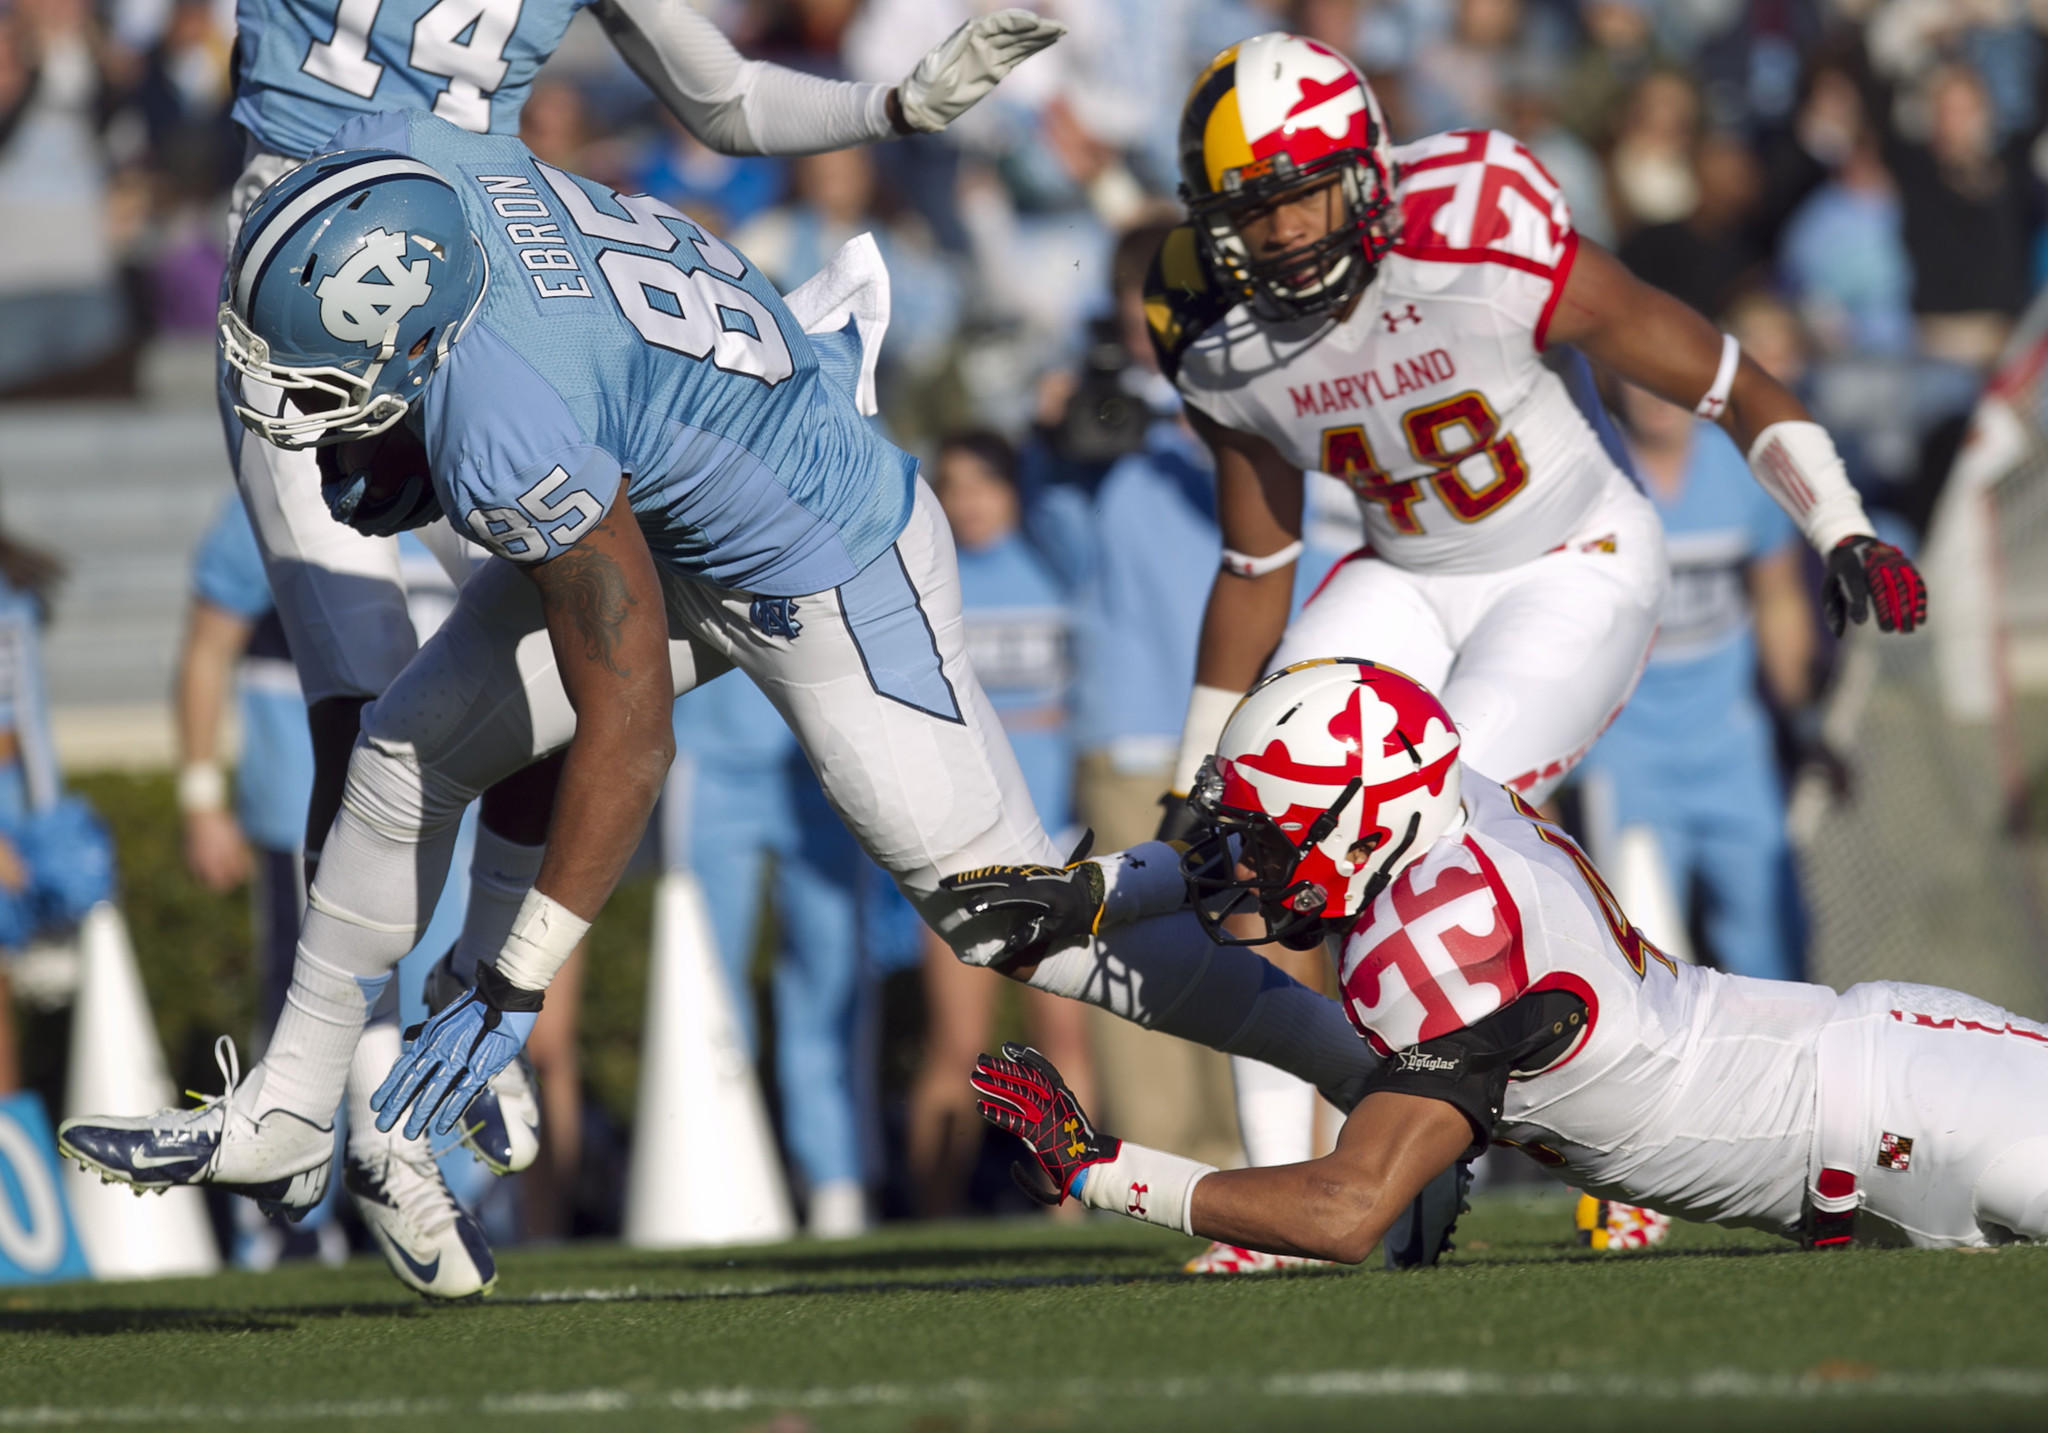 North Carolina tight end Eric Ebron continues to be linked to the Ravens in mock drafts.